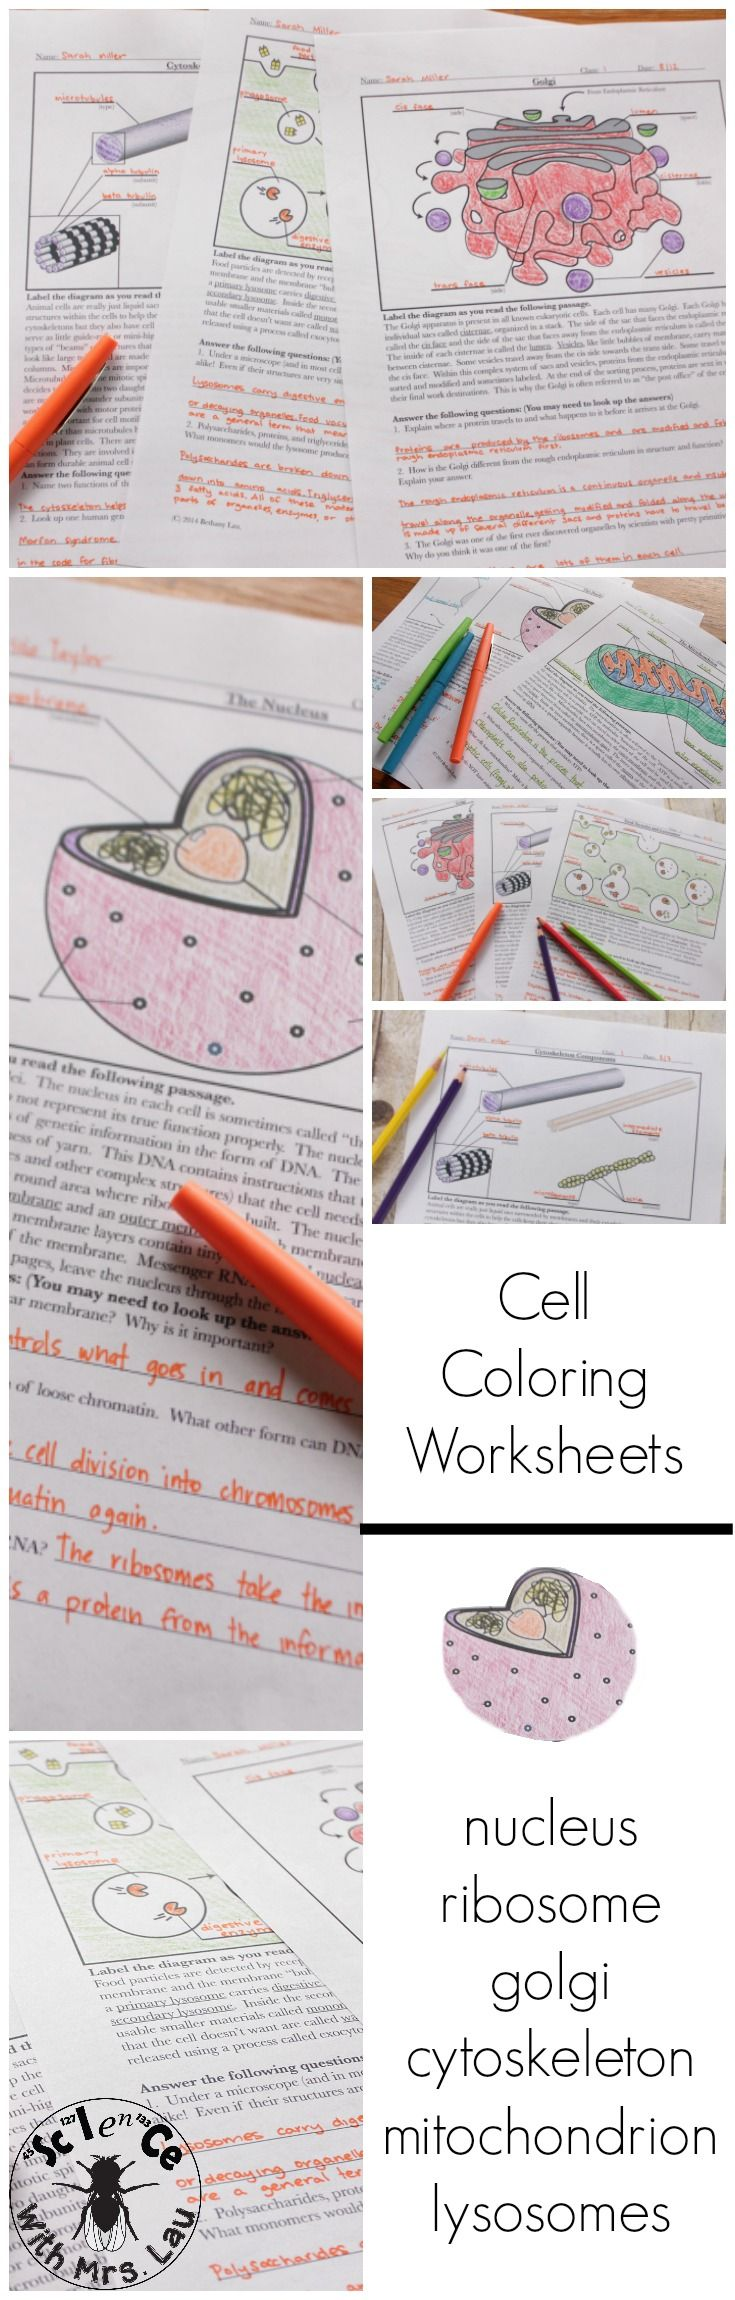 Cell A Bration Worksheet Answer Key Share The Knownledge – The Cell Cycle Coloring Worksheet Answers